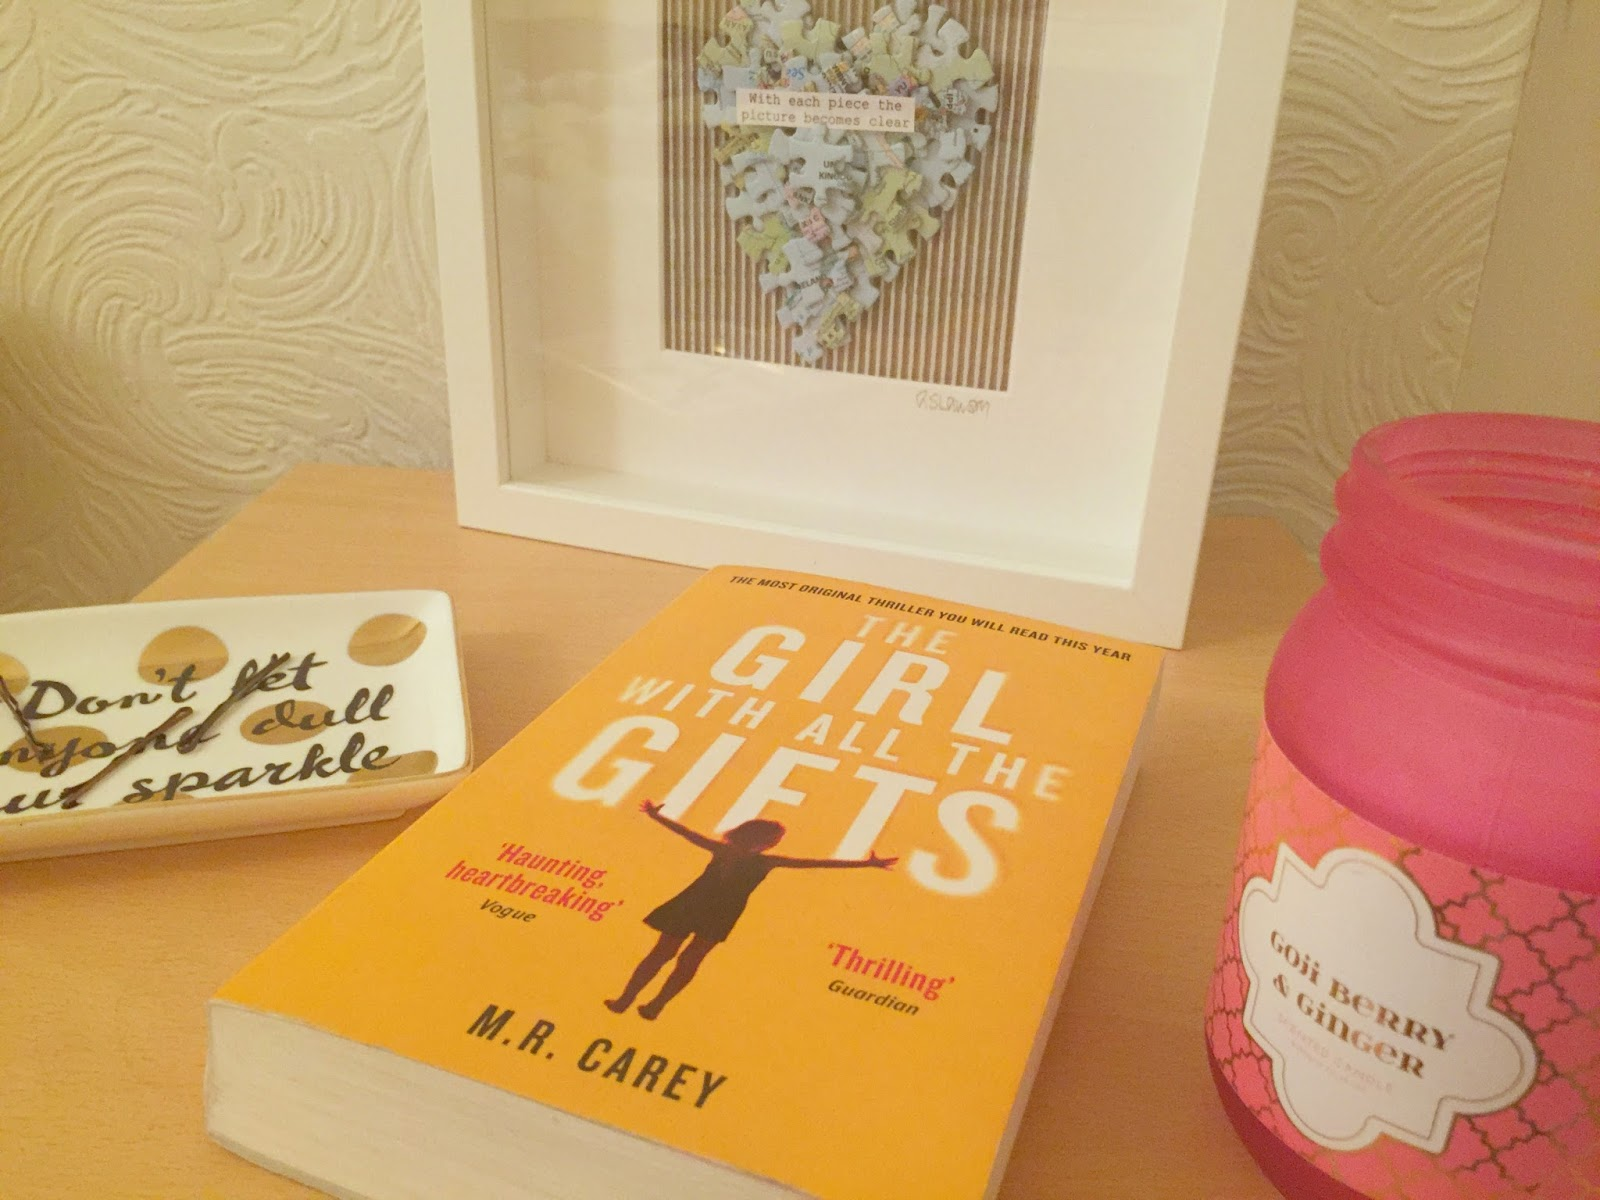 Formidable Joy | UK Fashion, Beauty & Lifestyle Blog | Book Review | The Girl With All The Gifts | Formidable Joy | Formidable Joy Blog | The Girl With The Gifts | M. R. Carey